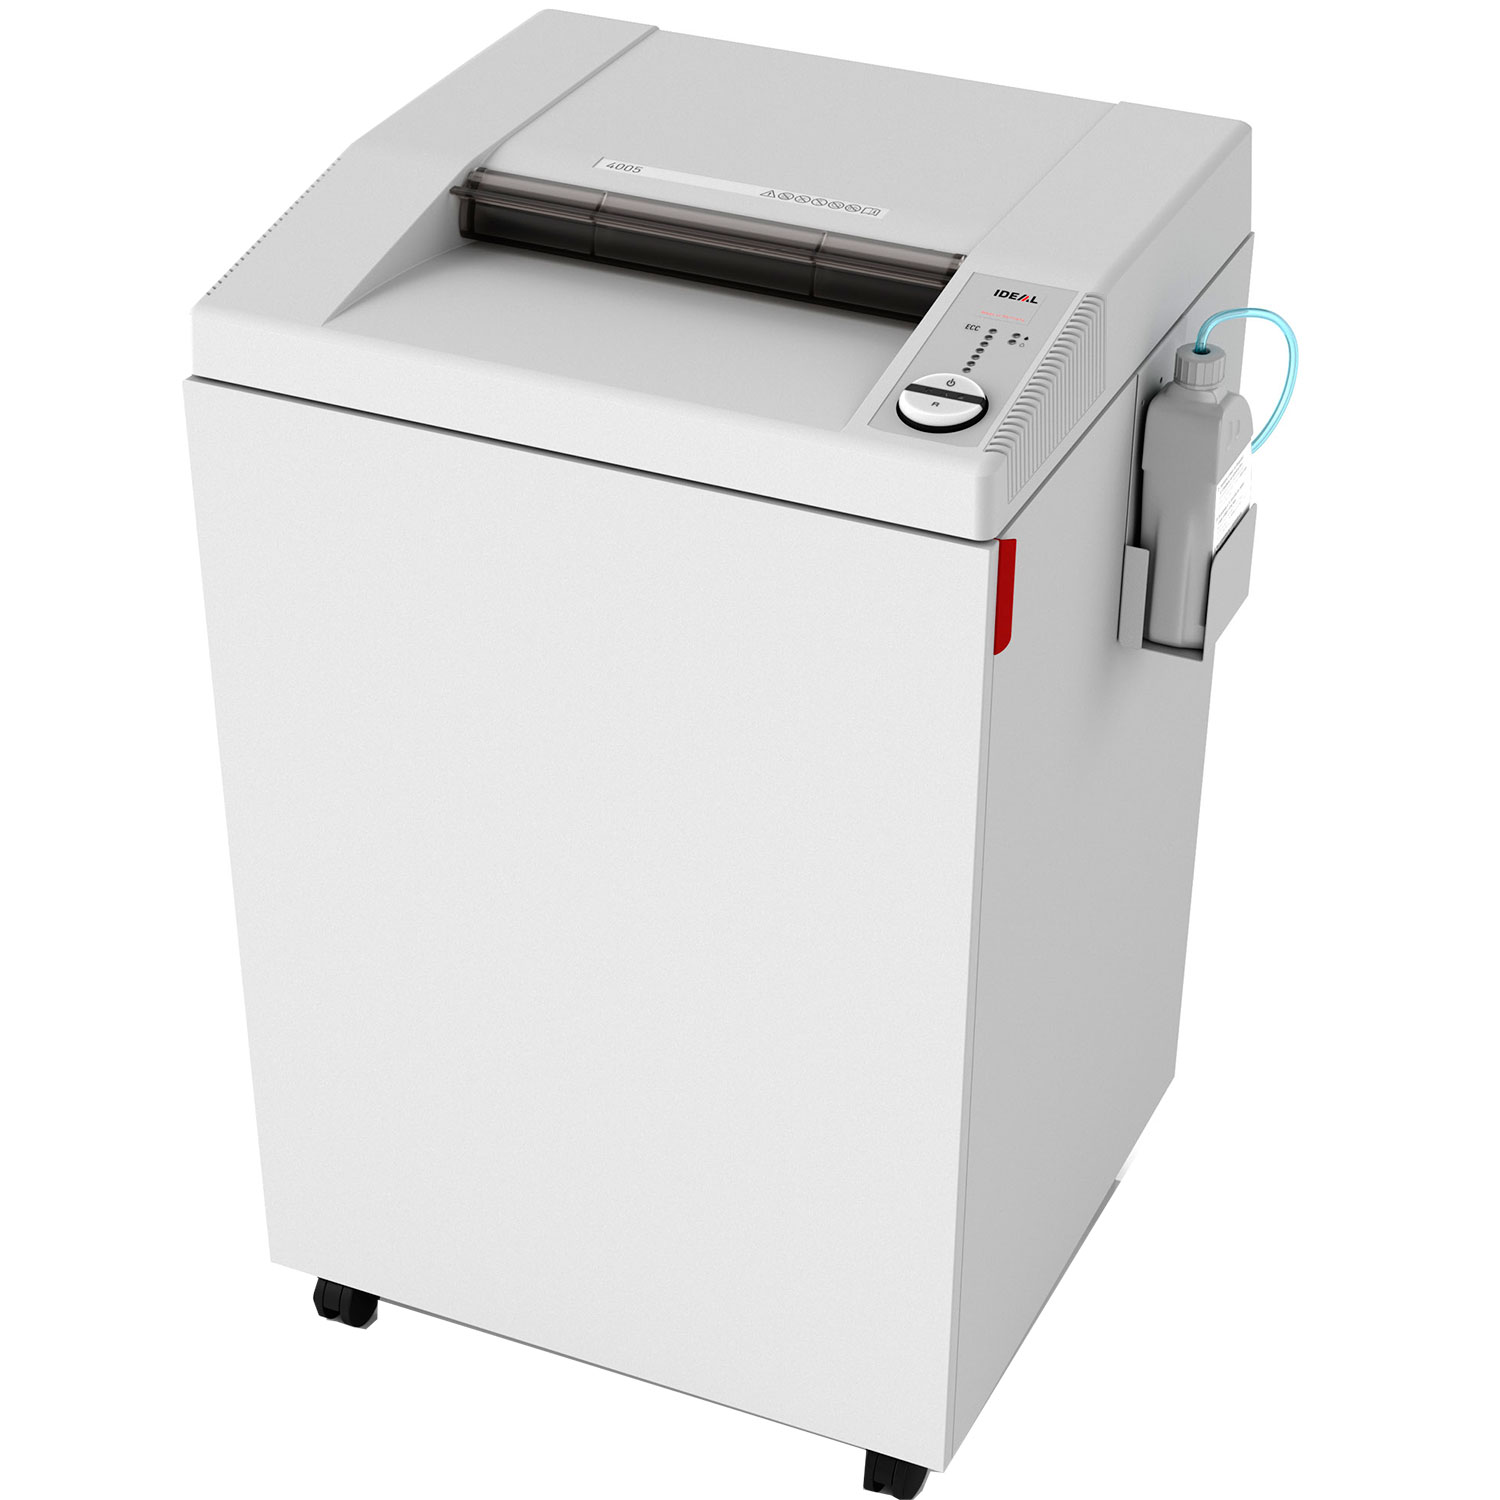 IDEAL 4005 Cross-Cut 4 x 40mm Paper Shredder